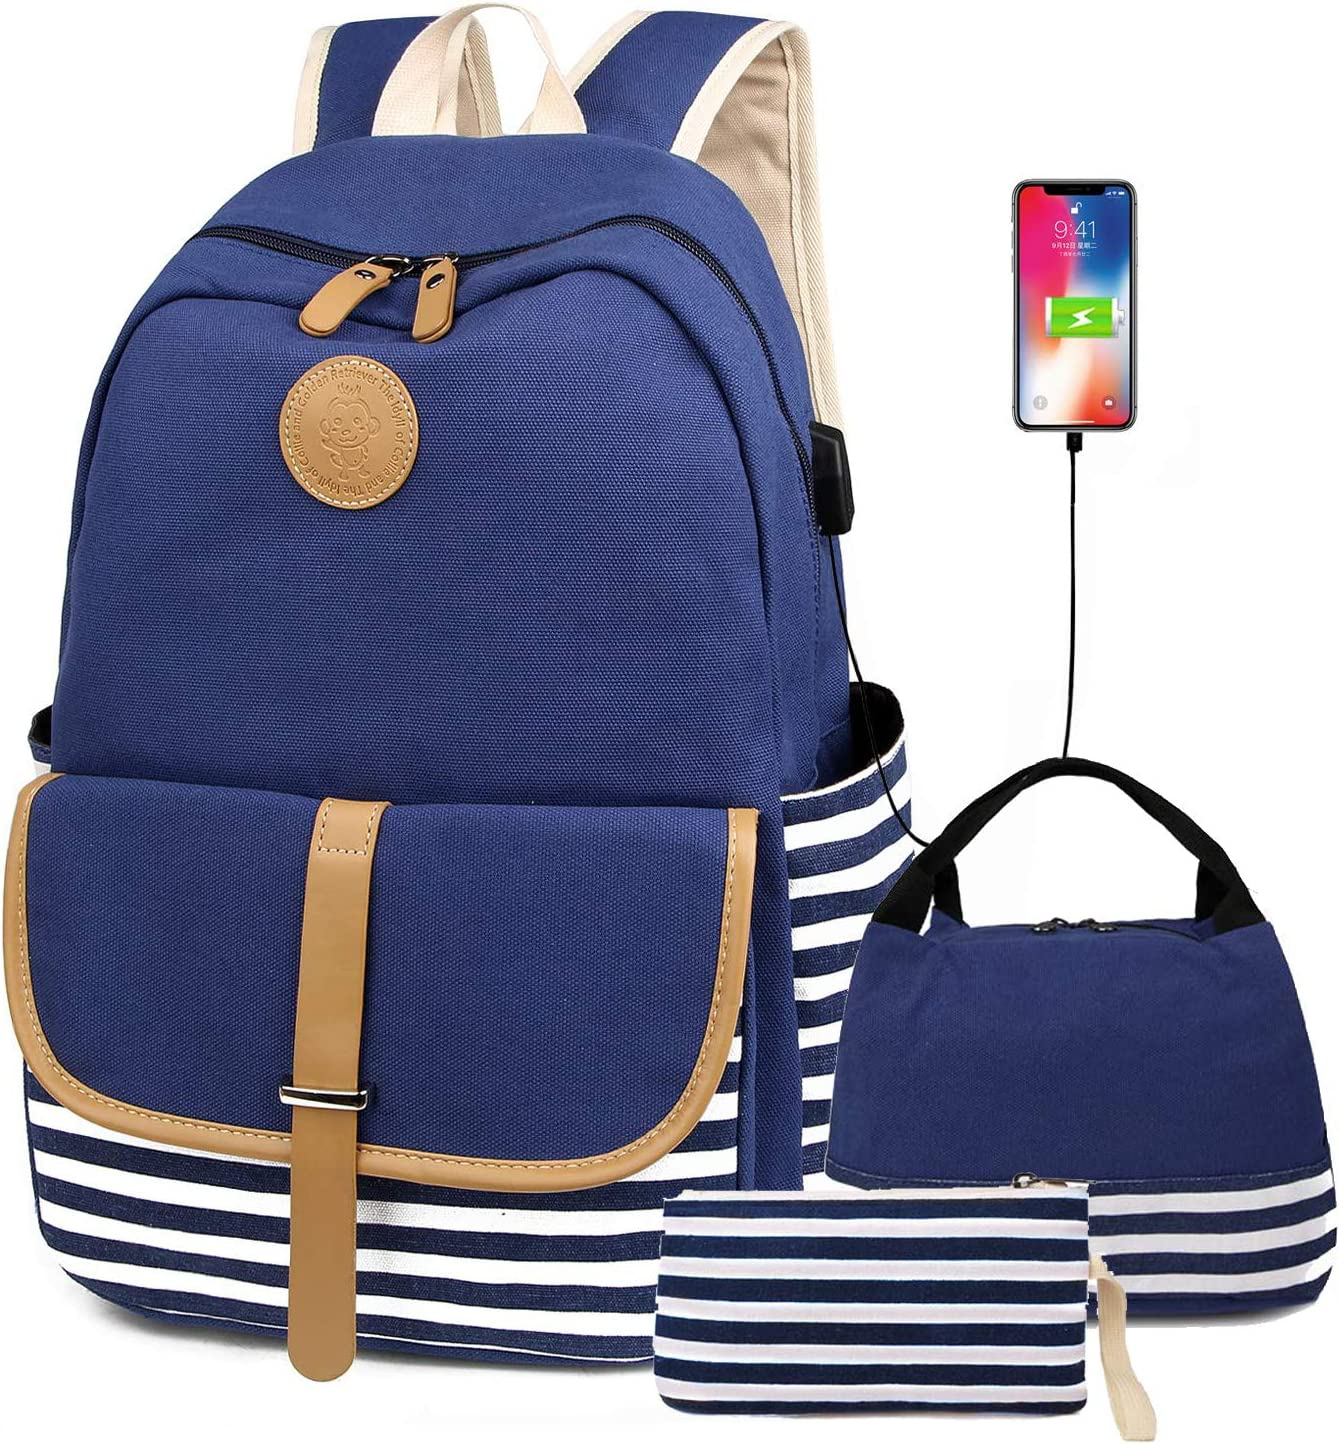 FLYMEI Canvas Backpack for Teens, Cute School Backpack for Girls 15.6'' Laptop Back Pack with USB Charging Port, Lightweight Blue Bookbag Casual Backpack for Women